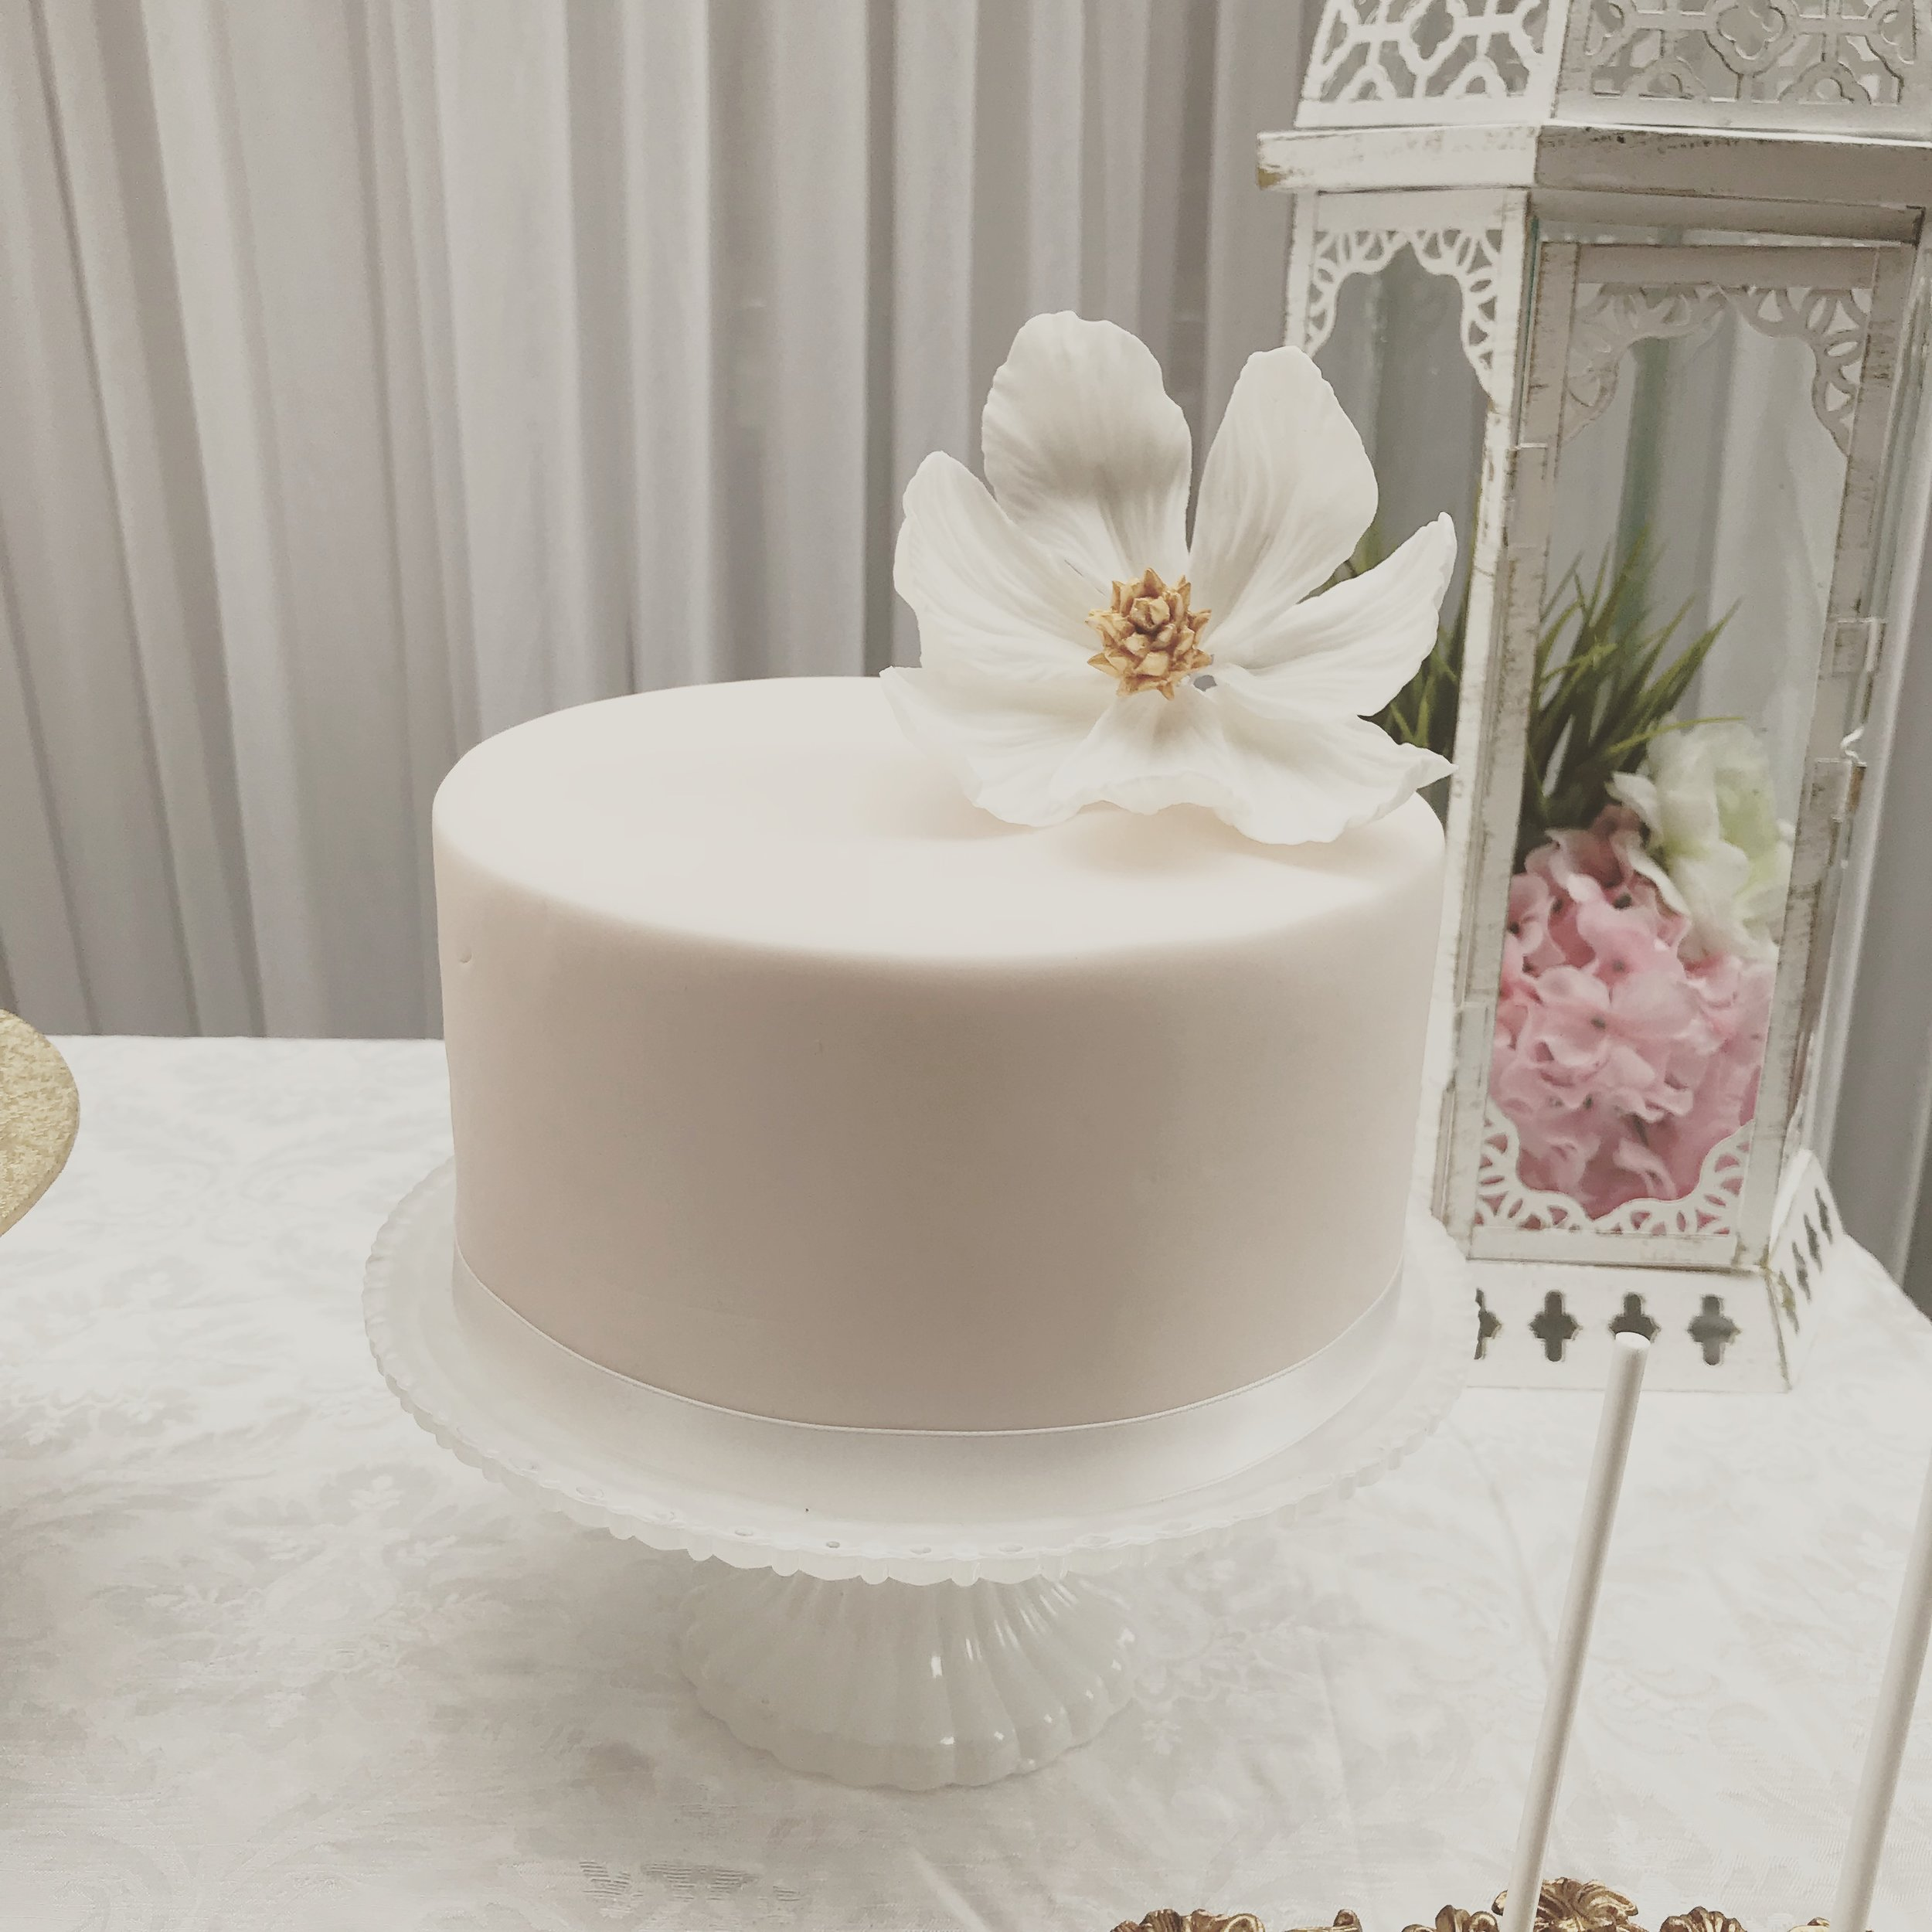 The 1920's inspiration on this wedding cake shows that simplicity can emphasise elegance.